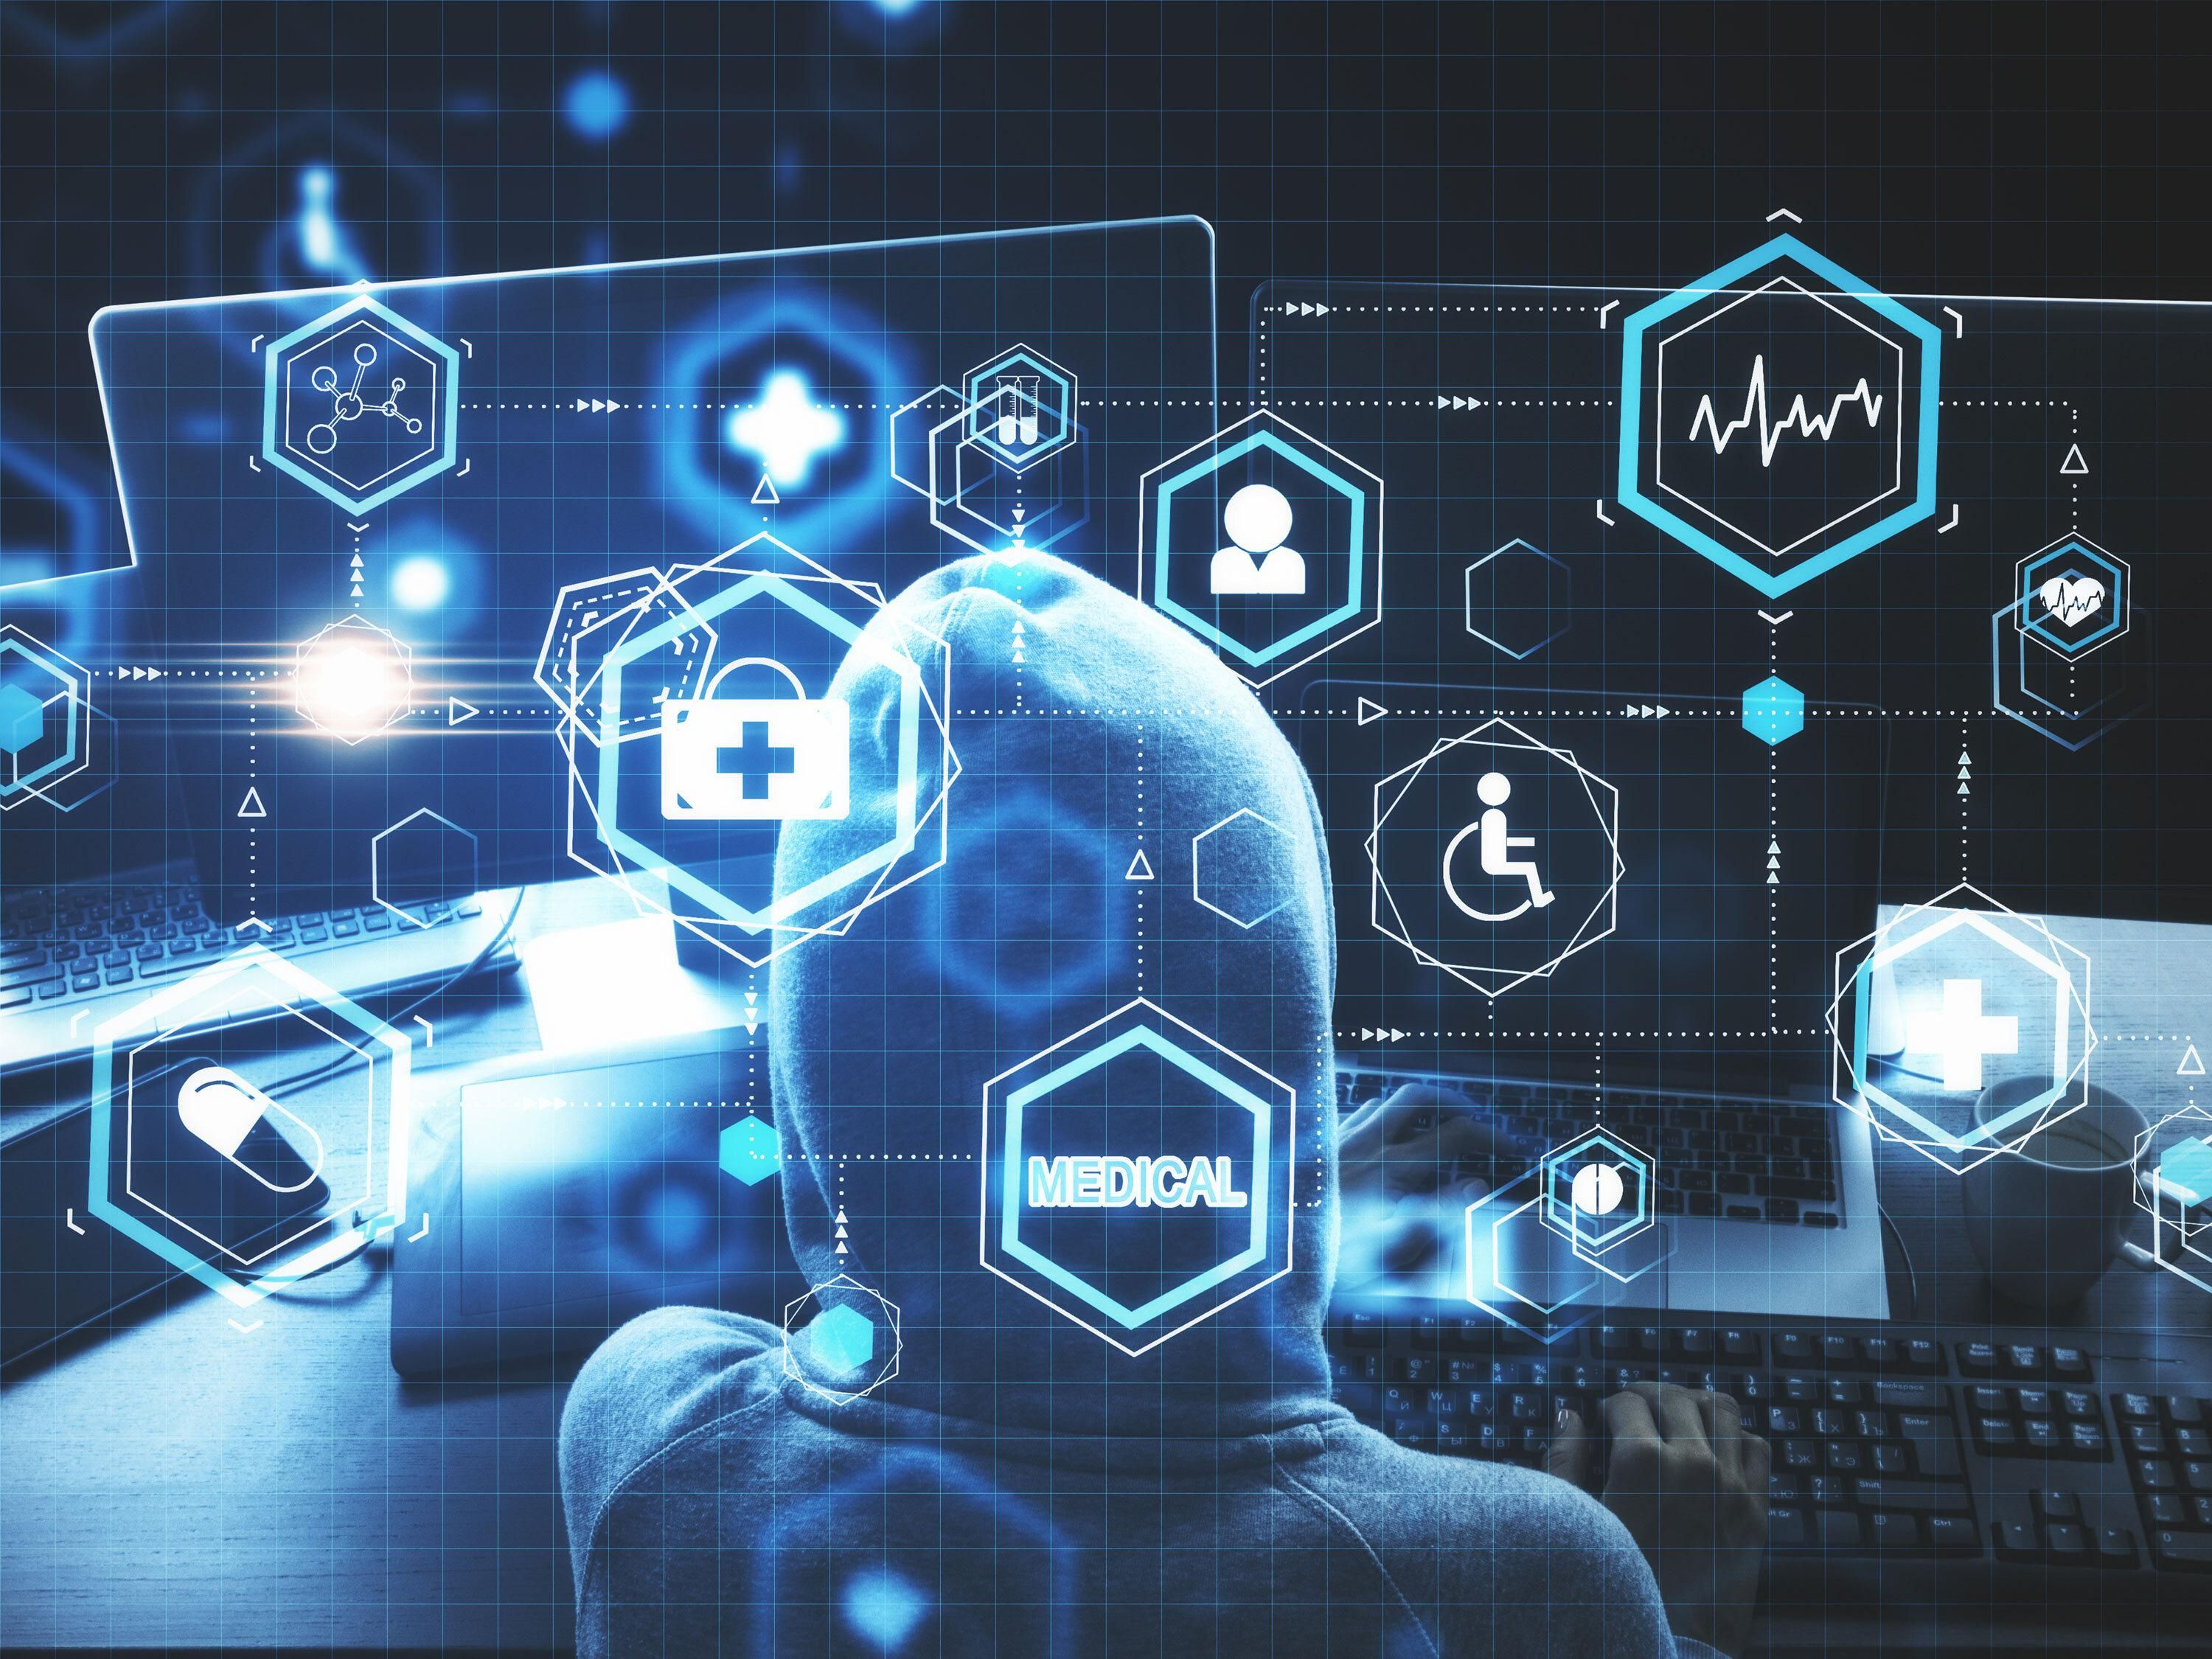 A person in front of a computer with medical based icons all around them.